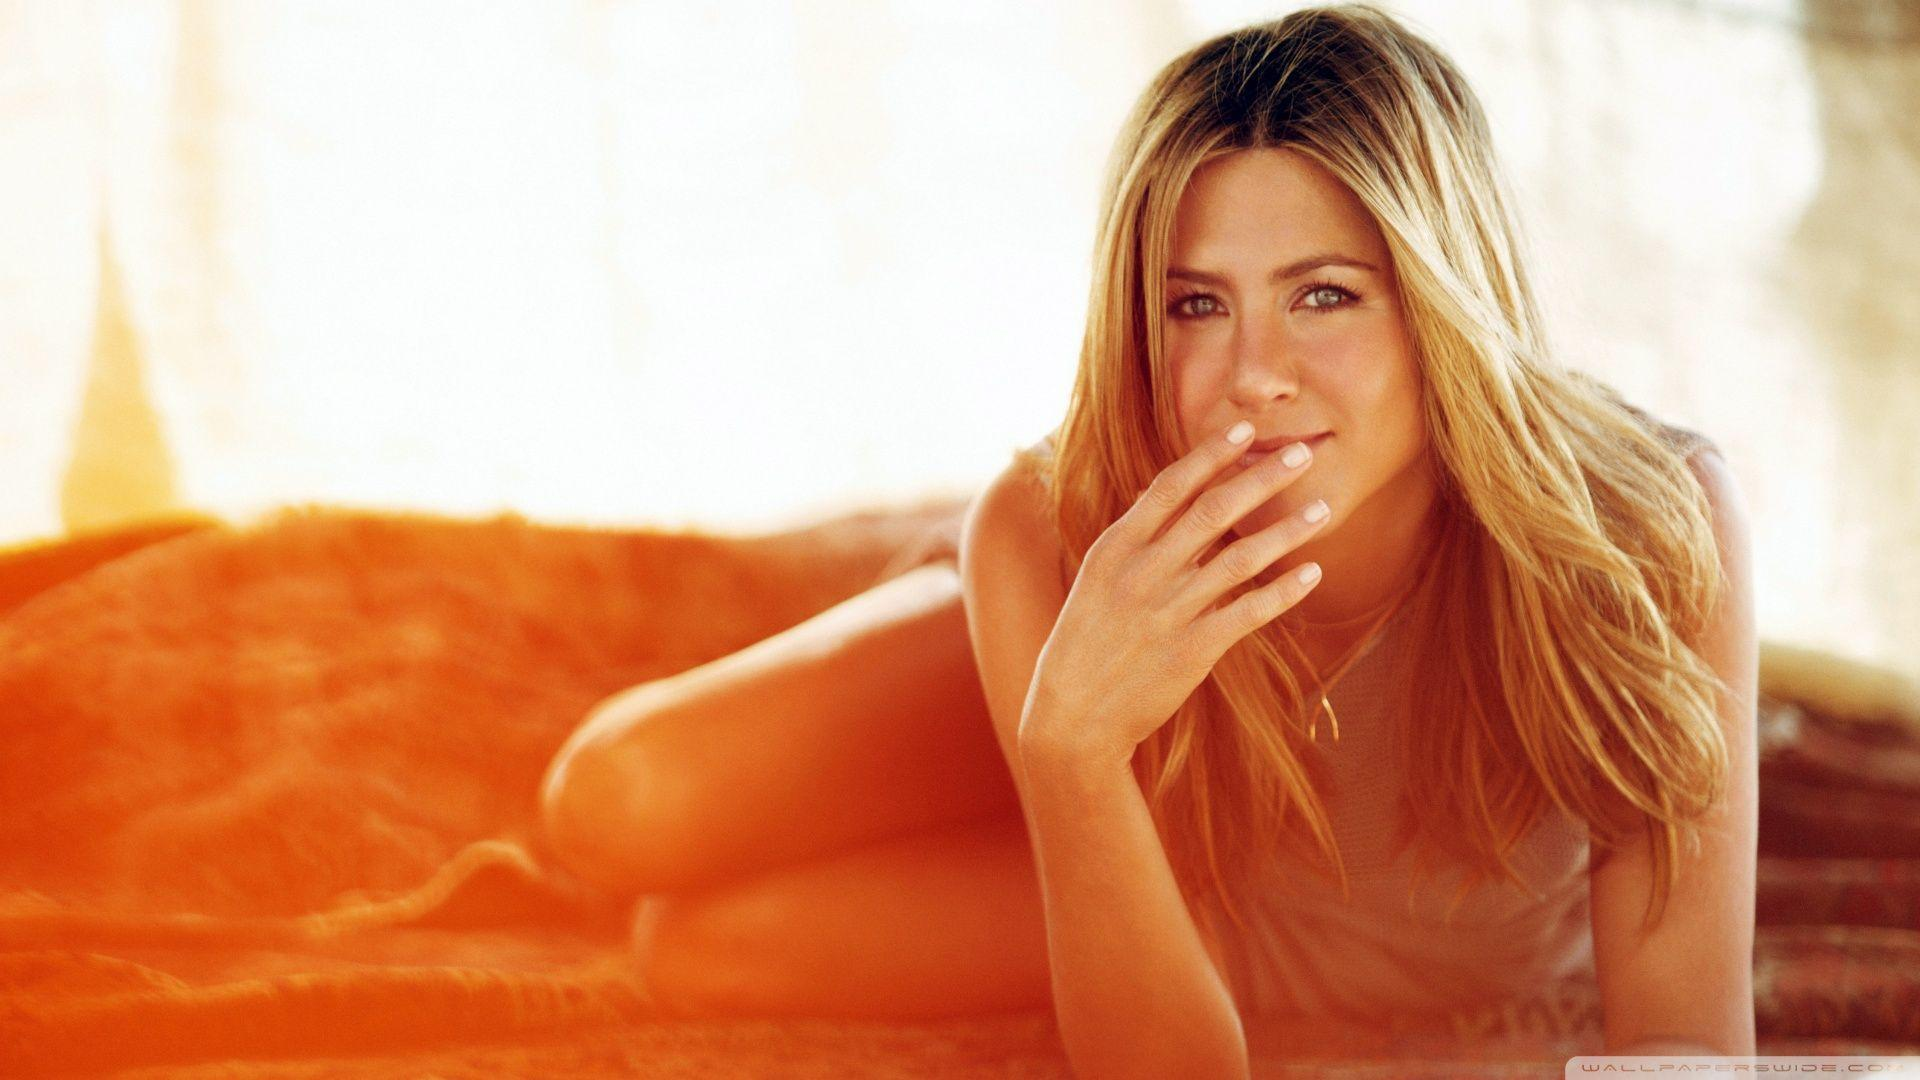 Jennifer Aniston HD desktop wallpaper : Widescreen : High ...